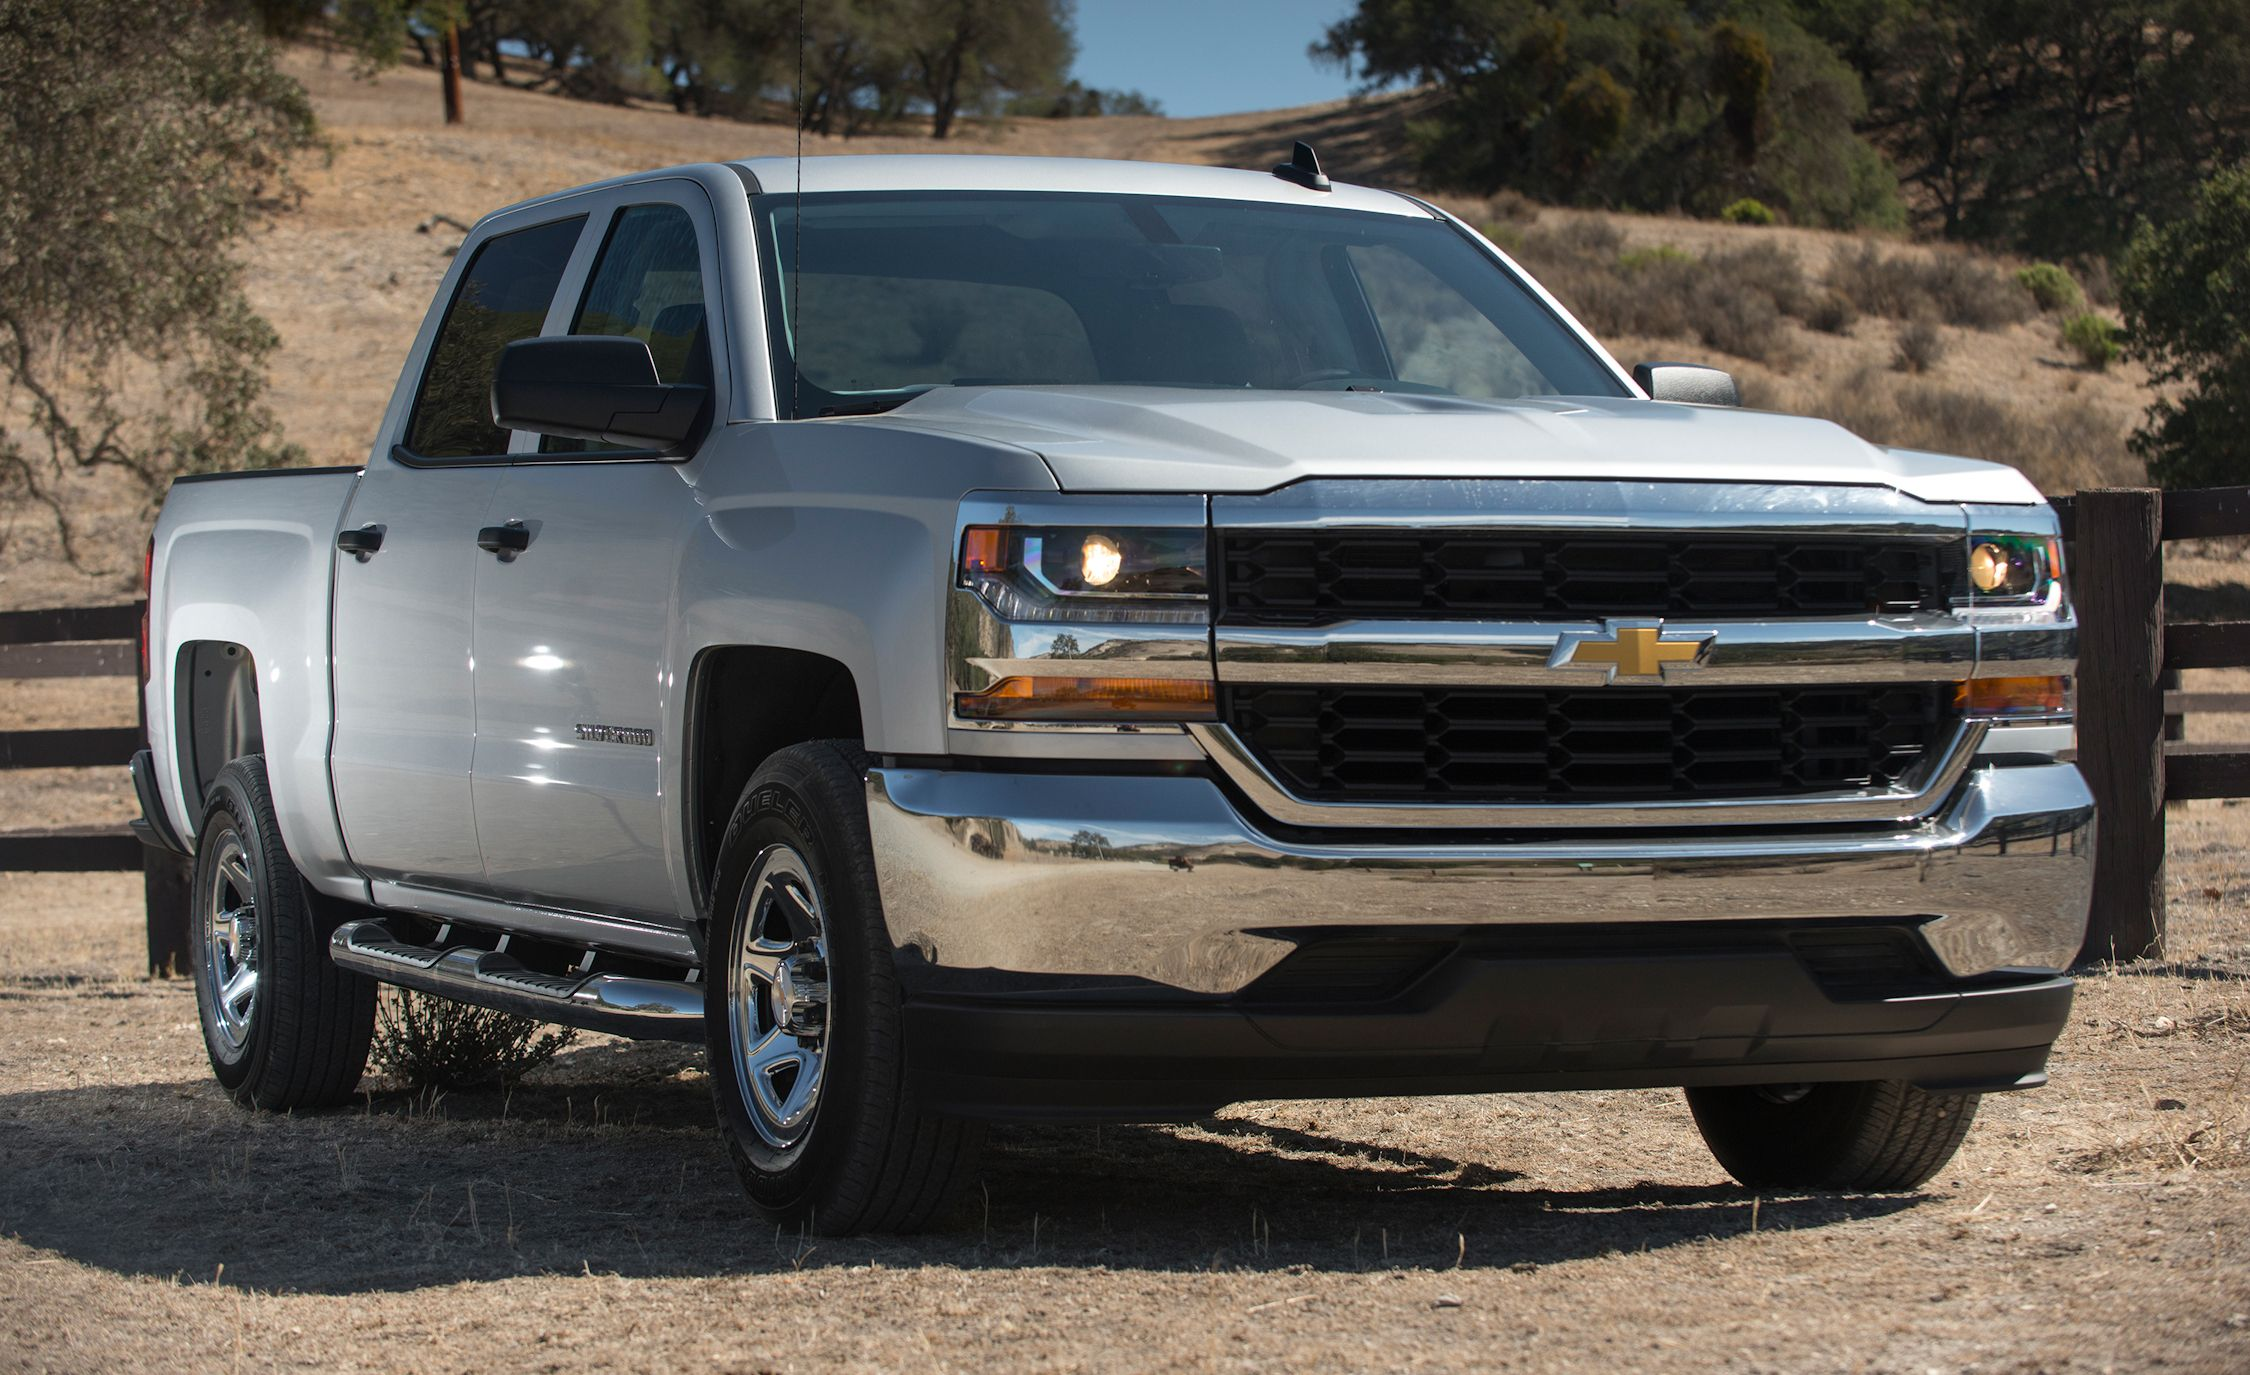 View 2016 chevrolet silverado 1500 photos from car and driver find high resolution car images in our photo gallery archive